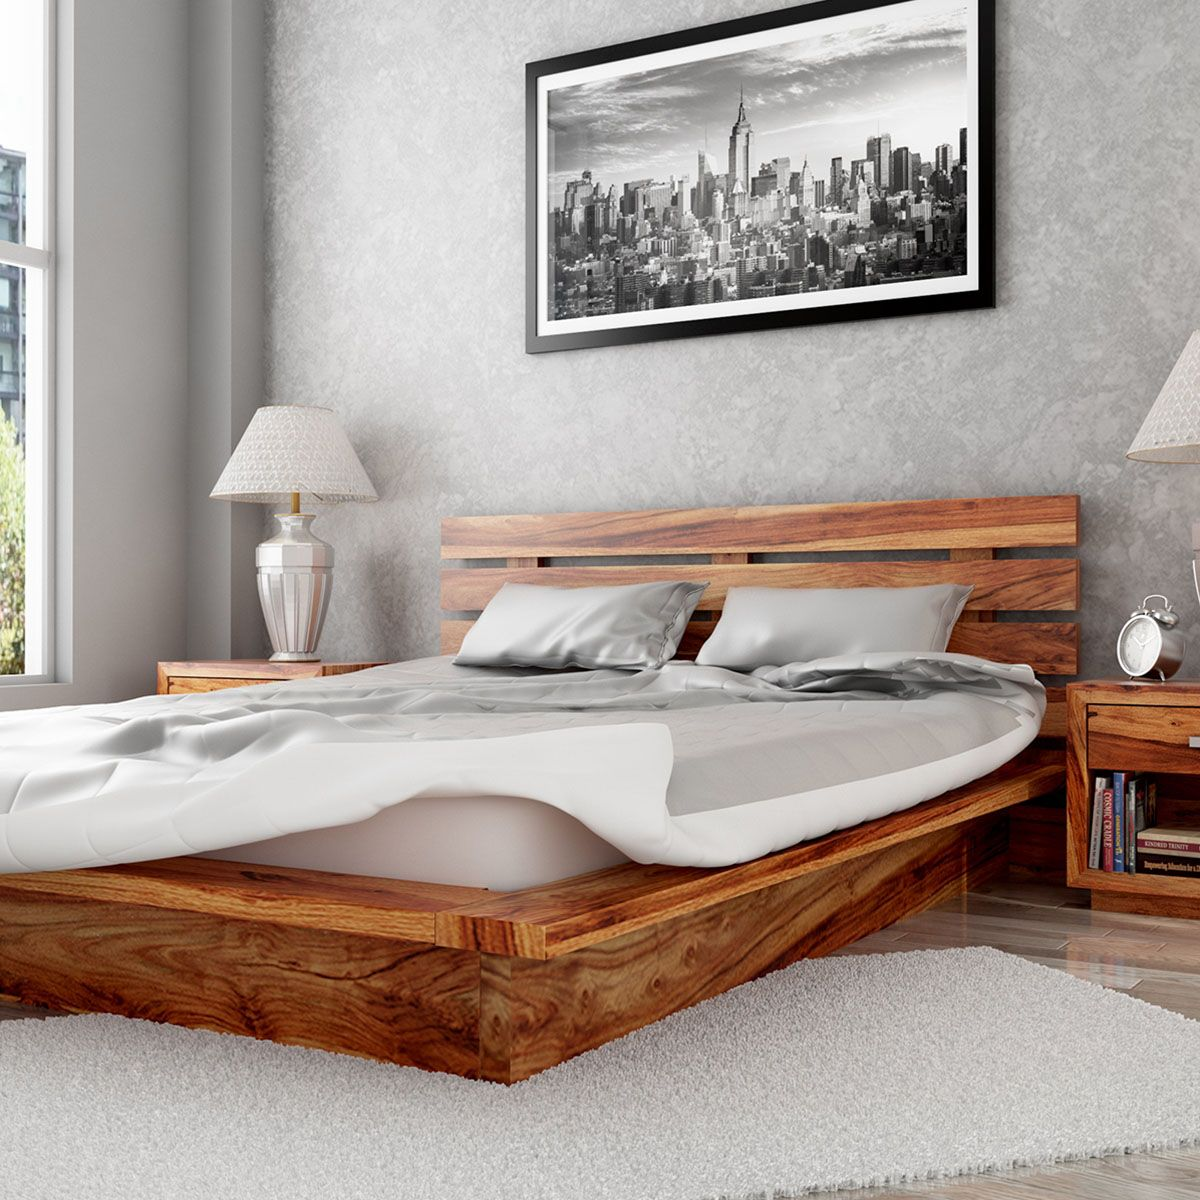 The Flagstaff Handcrafted Solid Wood Platform Bed Frame Offers A